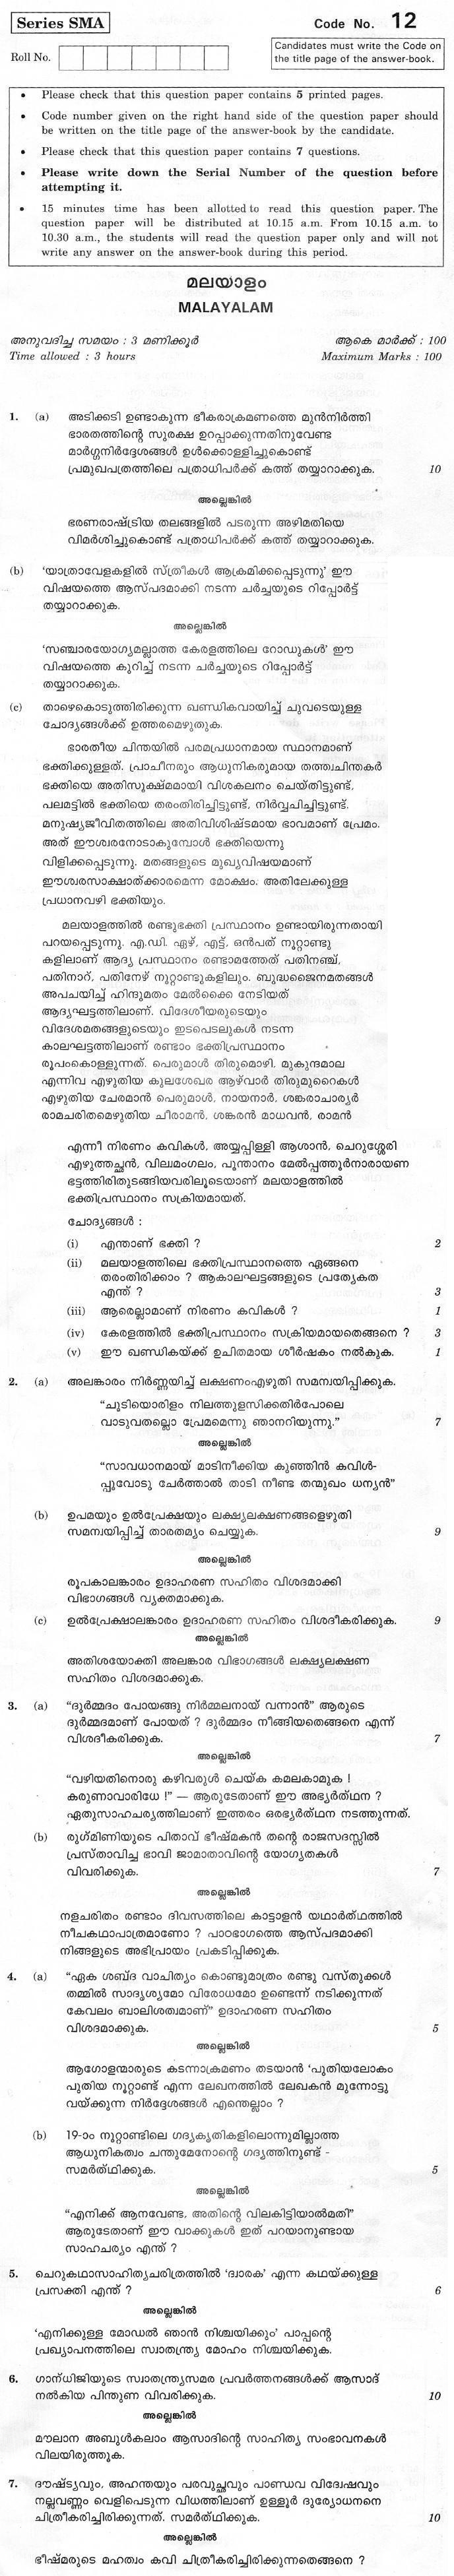 CBSE Class XII Previous Year Question Paper 2012 Malayalam